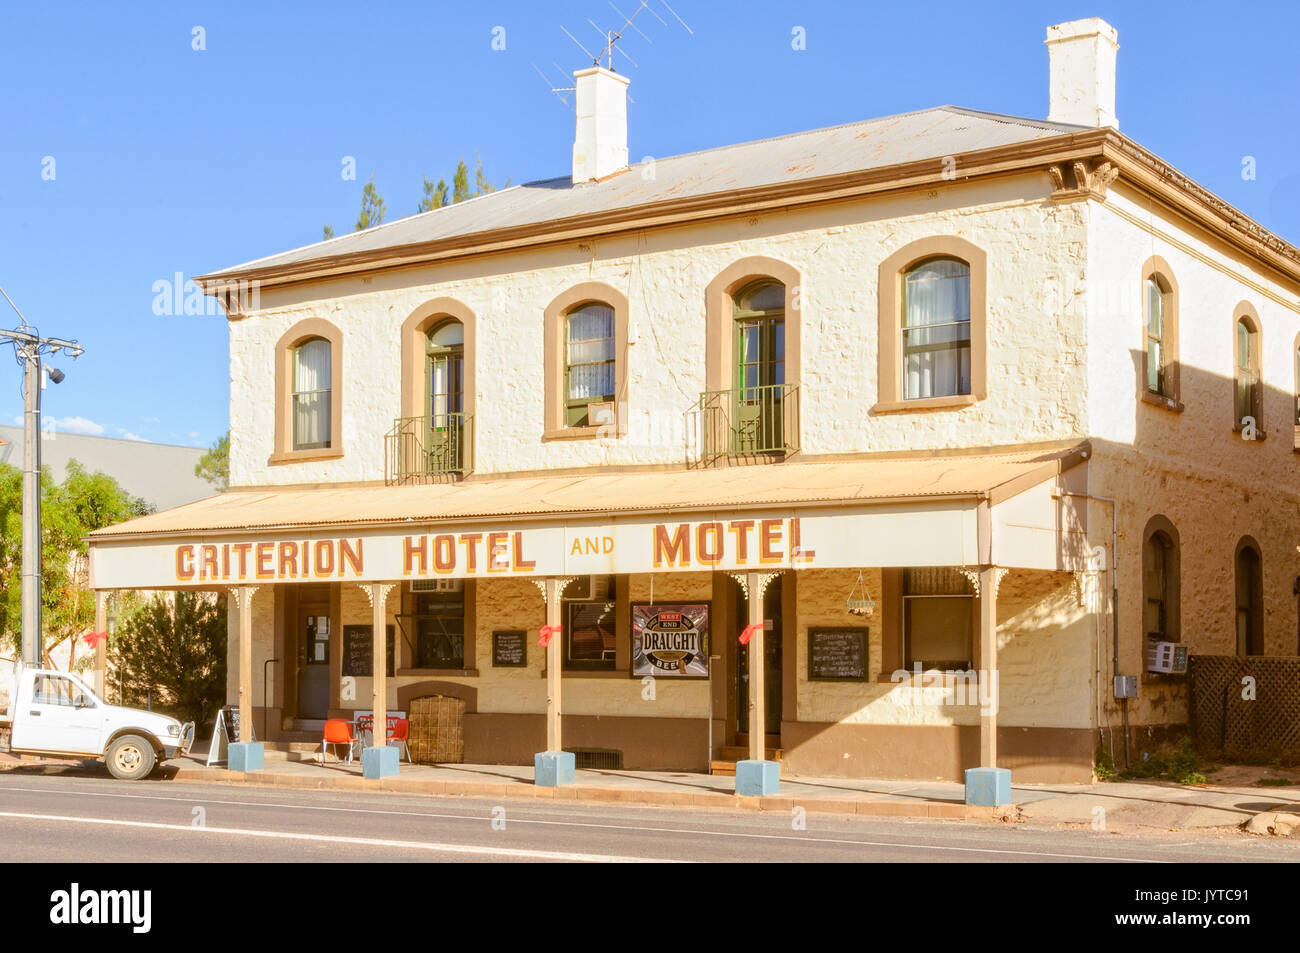 The Criterion Hotel Motel does not seem to have  changed much since 1880 - Quorn, SA, Australia - Stock Image